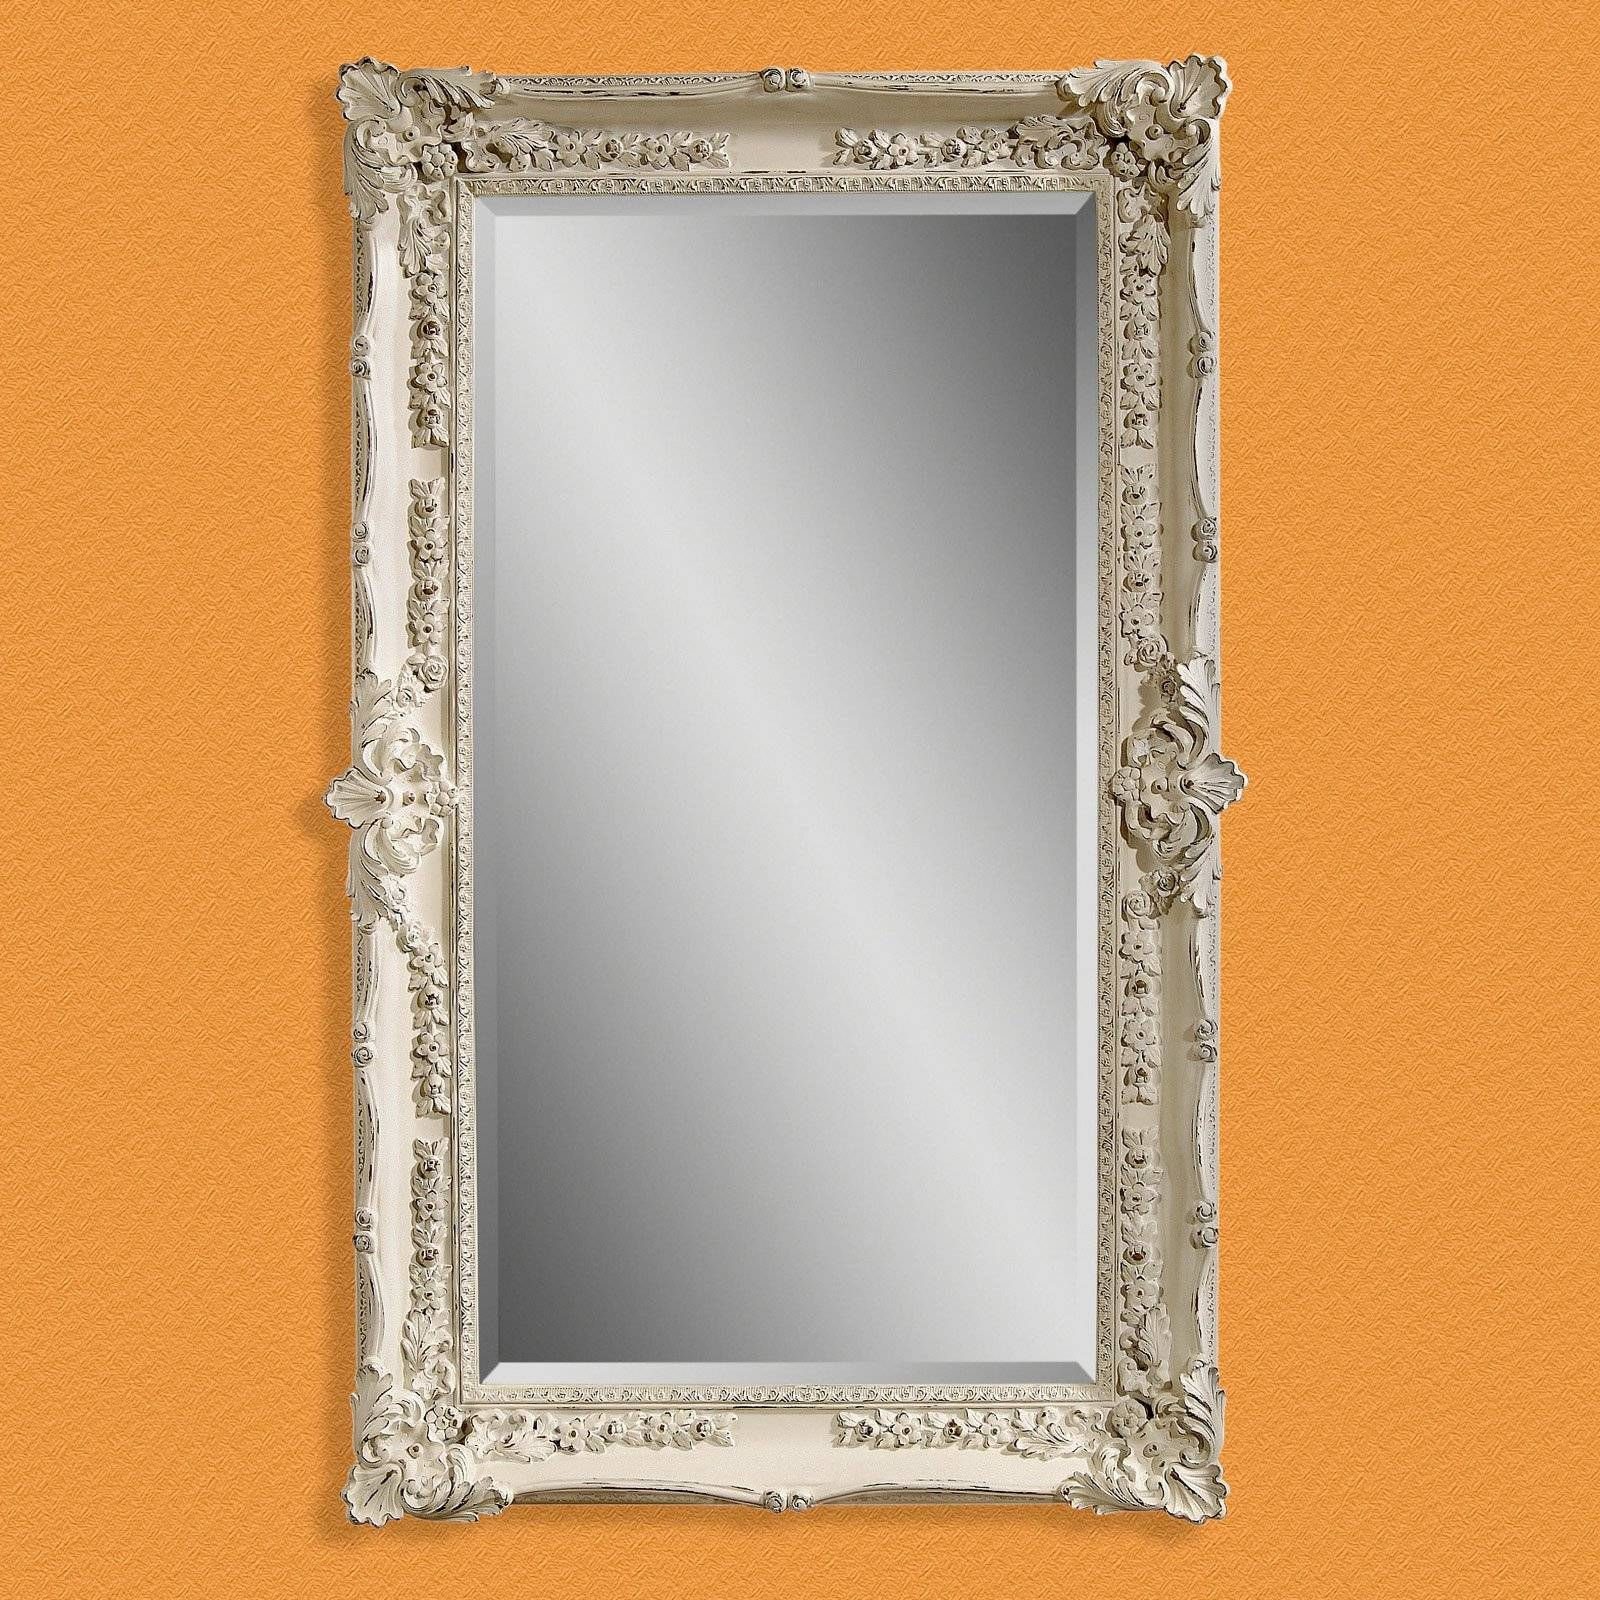 Antique White Wall / Leaning Floor Mirror - 43W X 69H In. | Hayneedle for Vintage White Mirrors (Image 4 of 25)